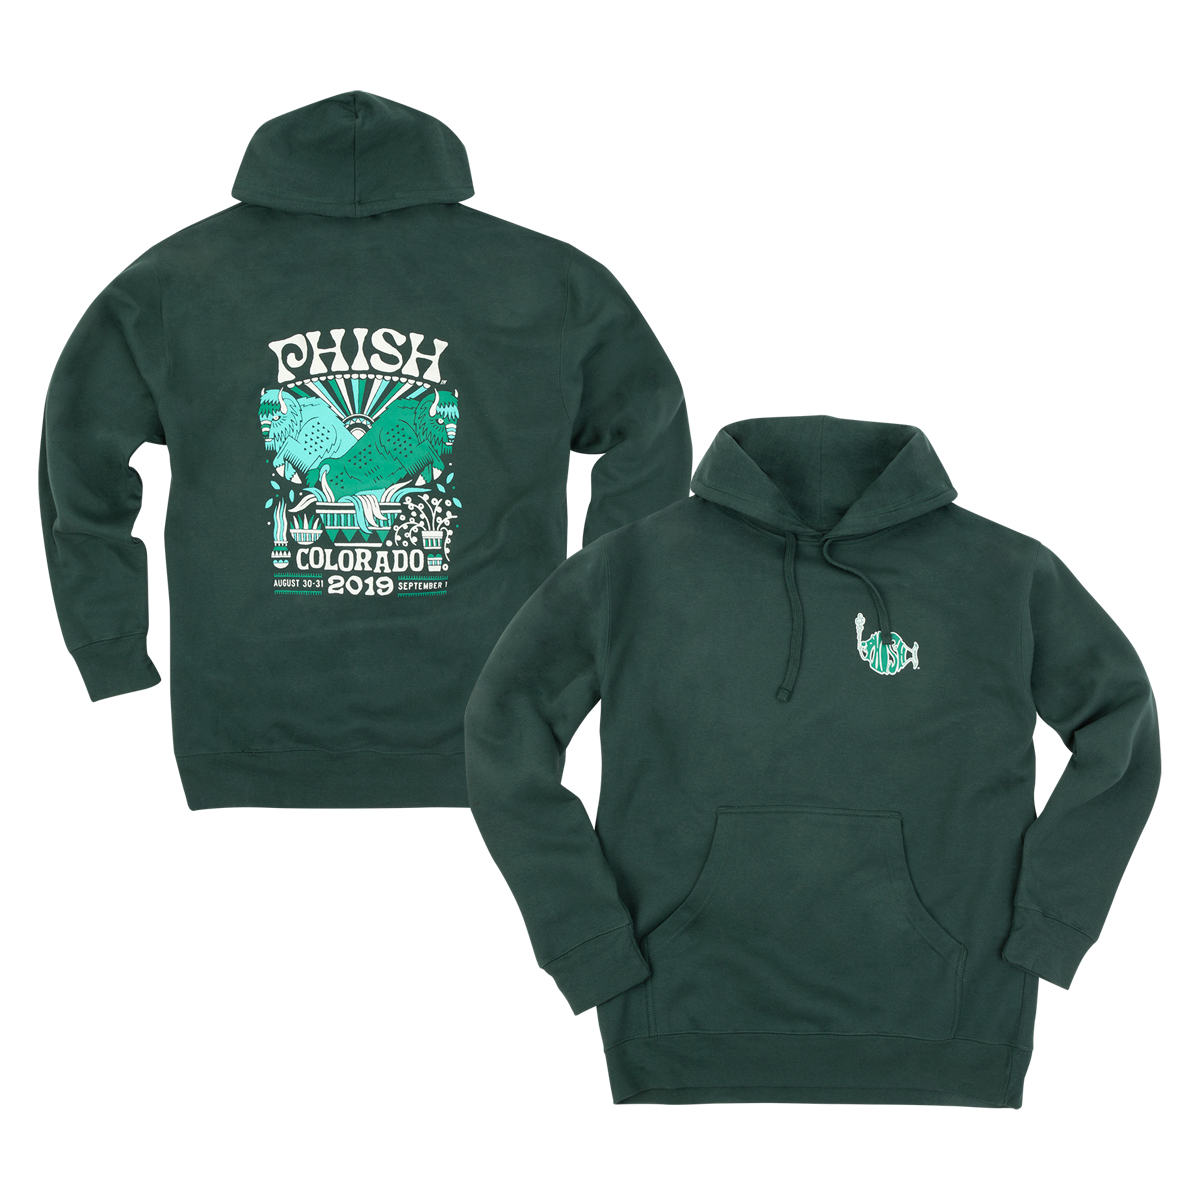 Commerce City 2019 Event Hoodie on Alpine Green